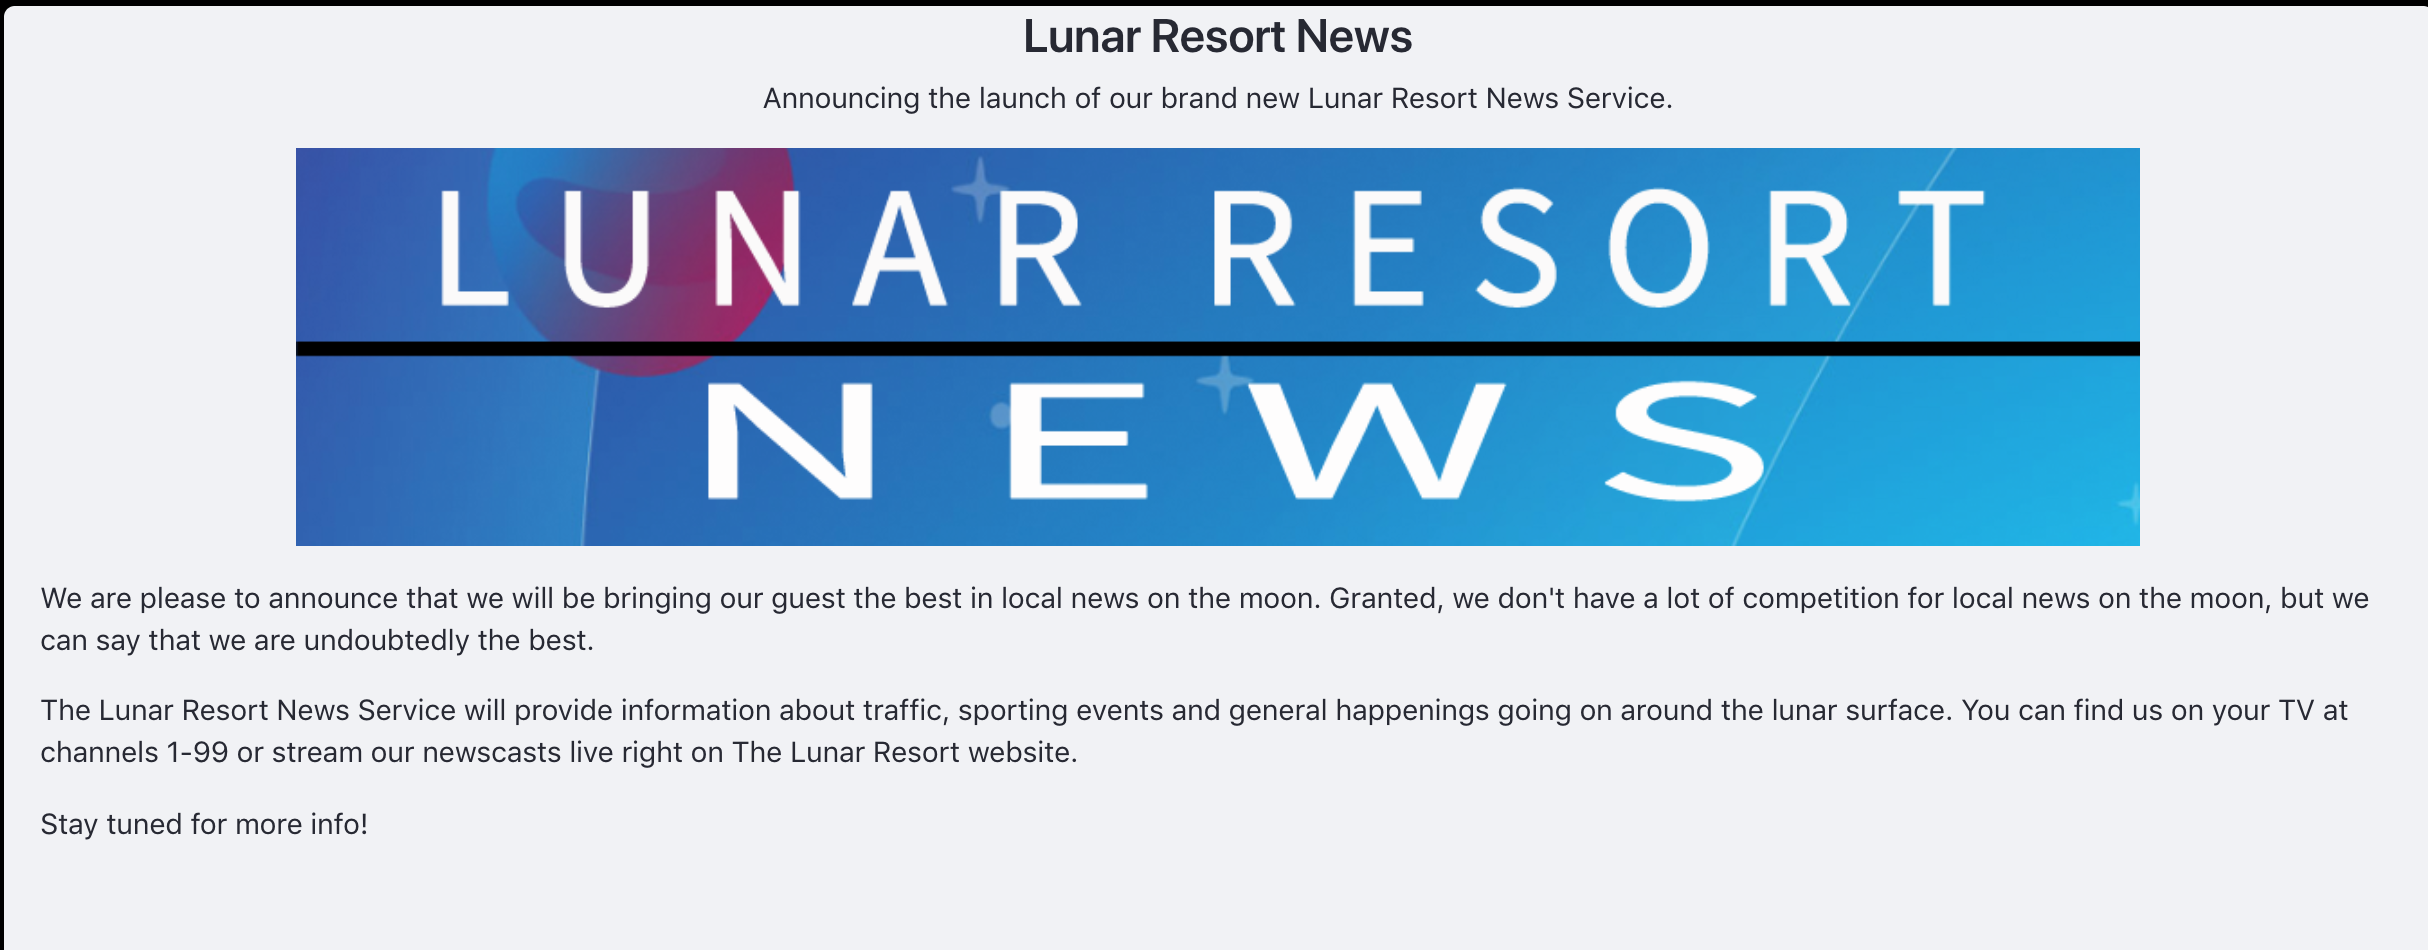 Figure 1: The Lunar Resort News Article is shaping up!